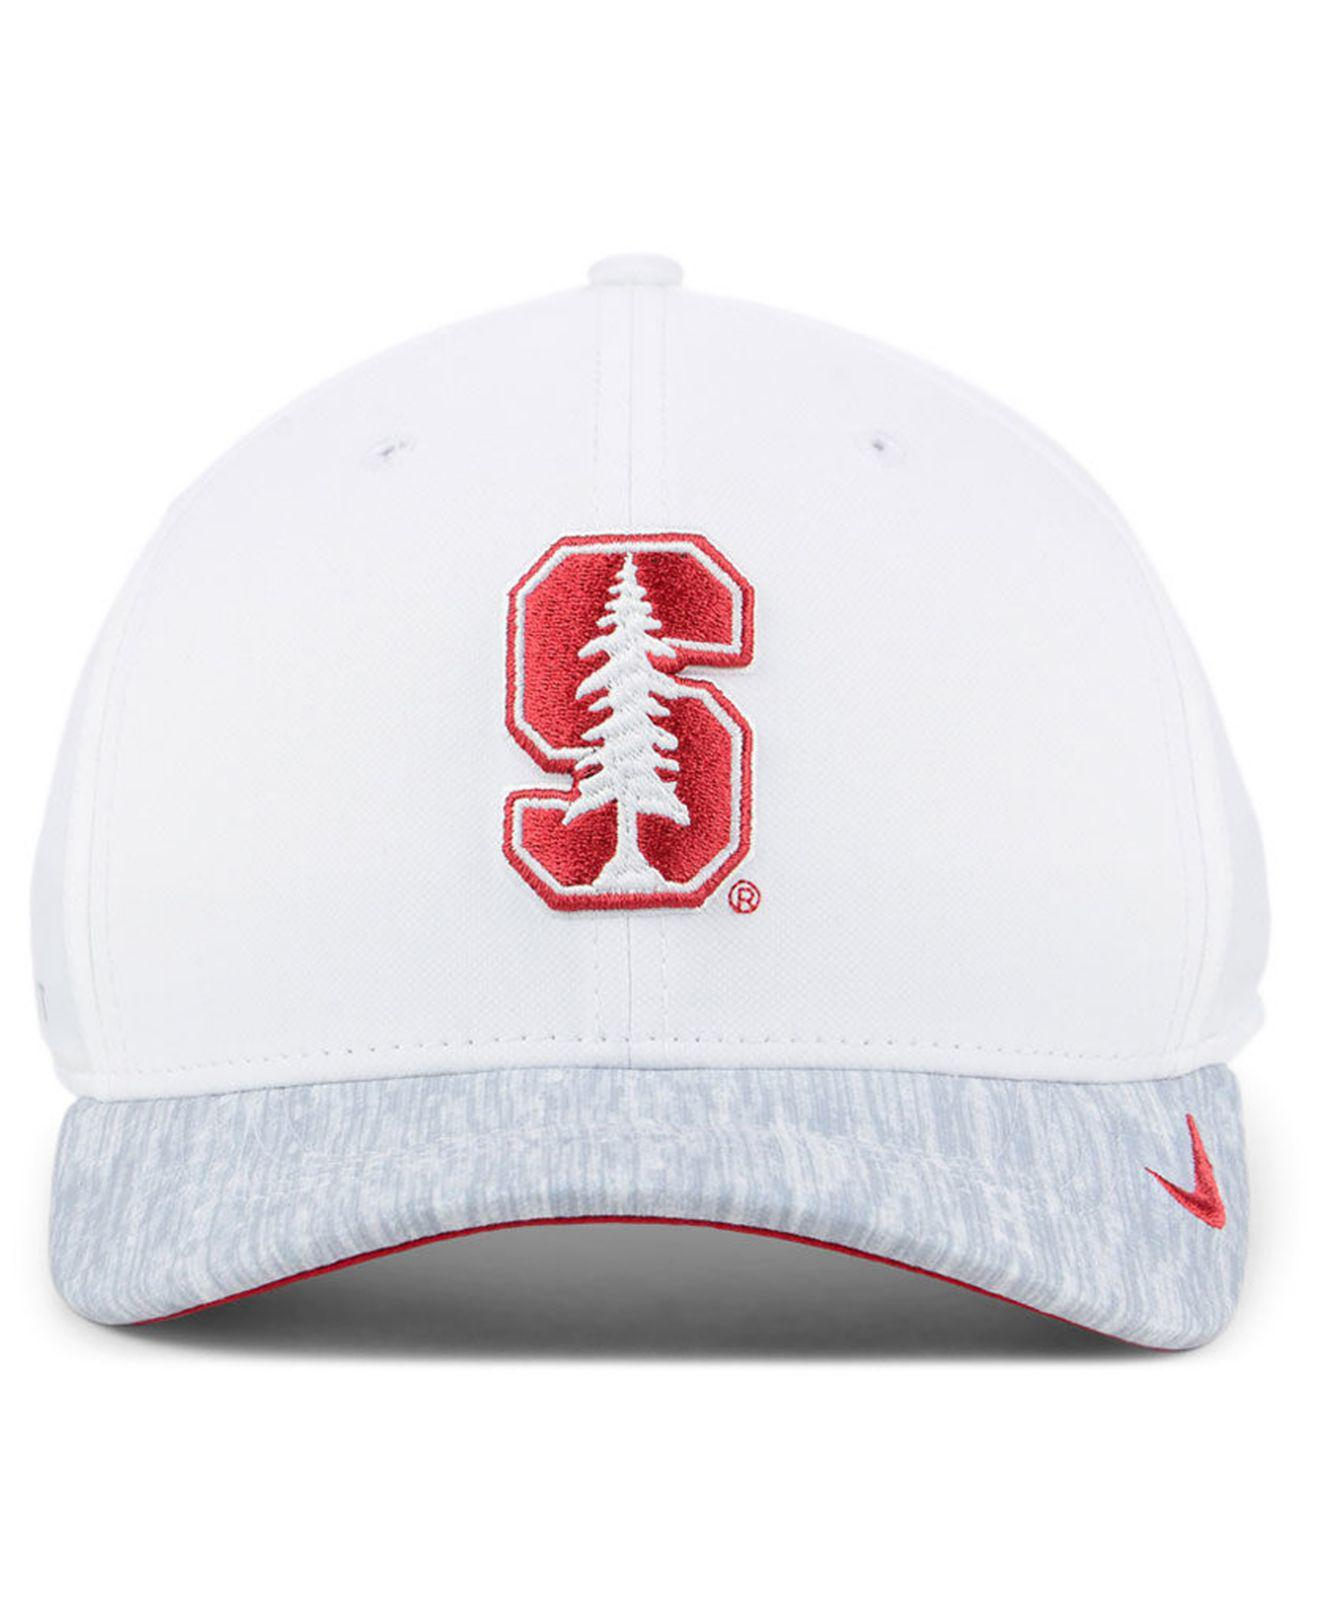 74f2173d coupon for stanford cardinal nike ncaa h86 trucker cap 4ff99 5c75e